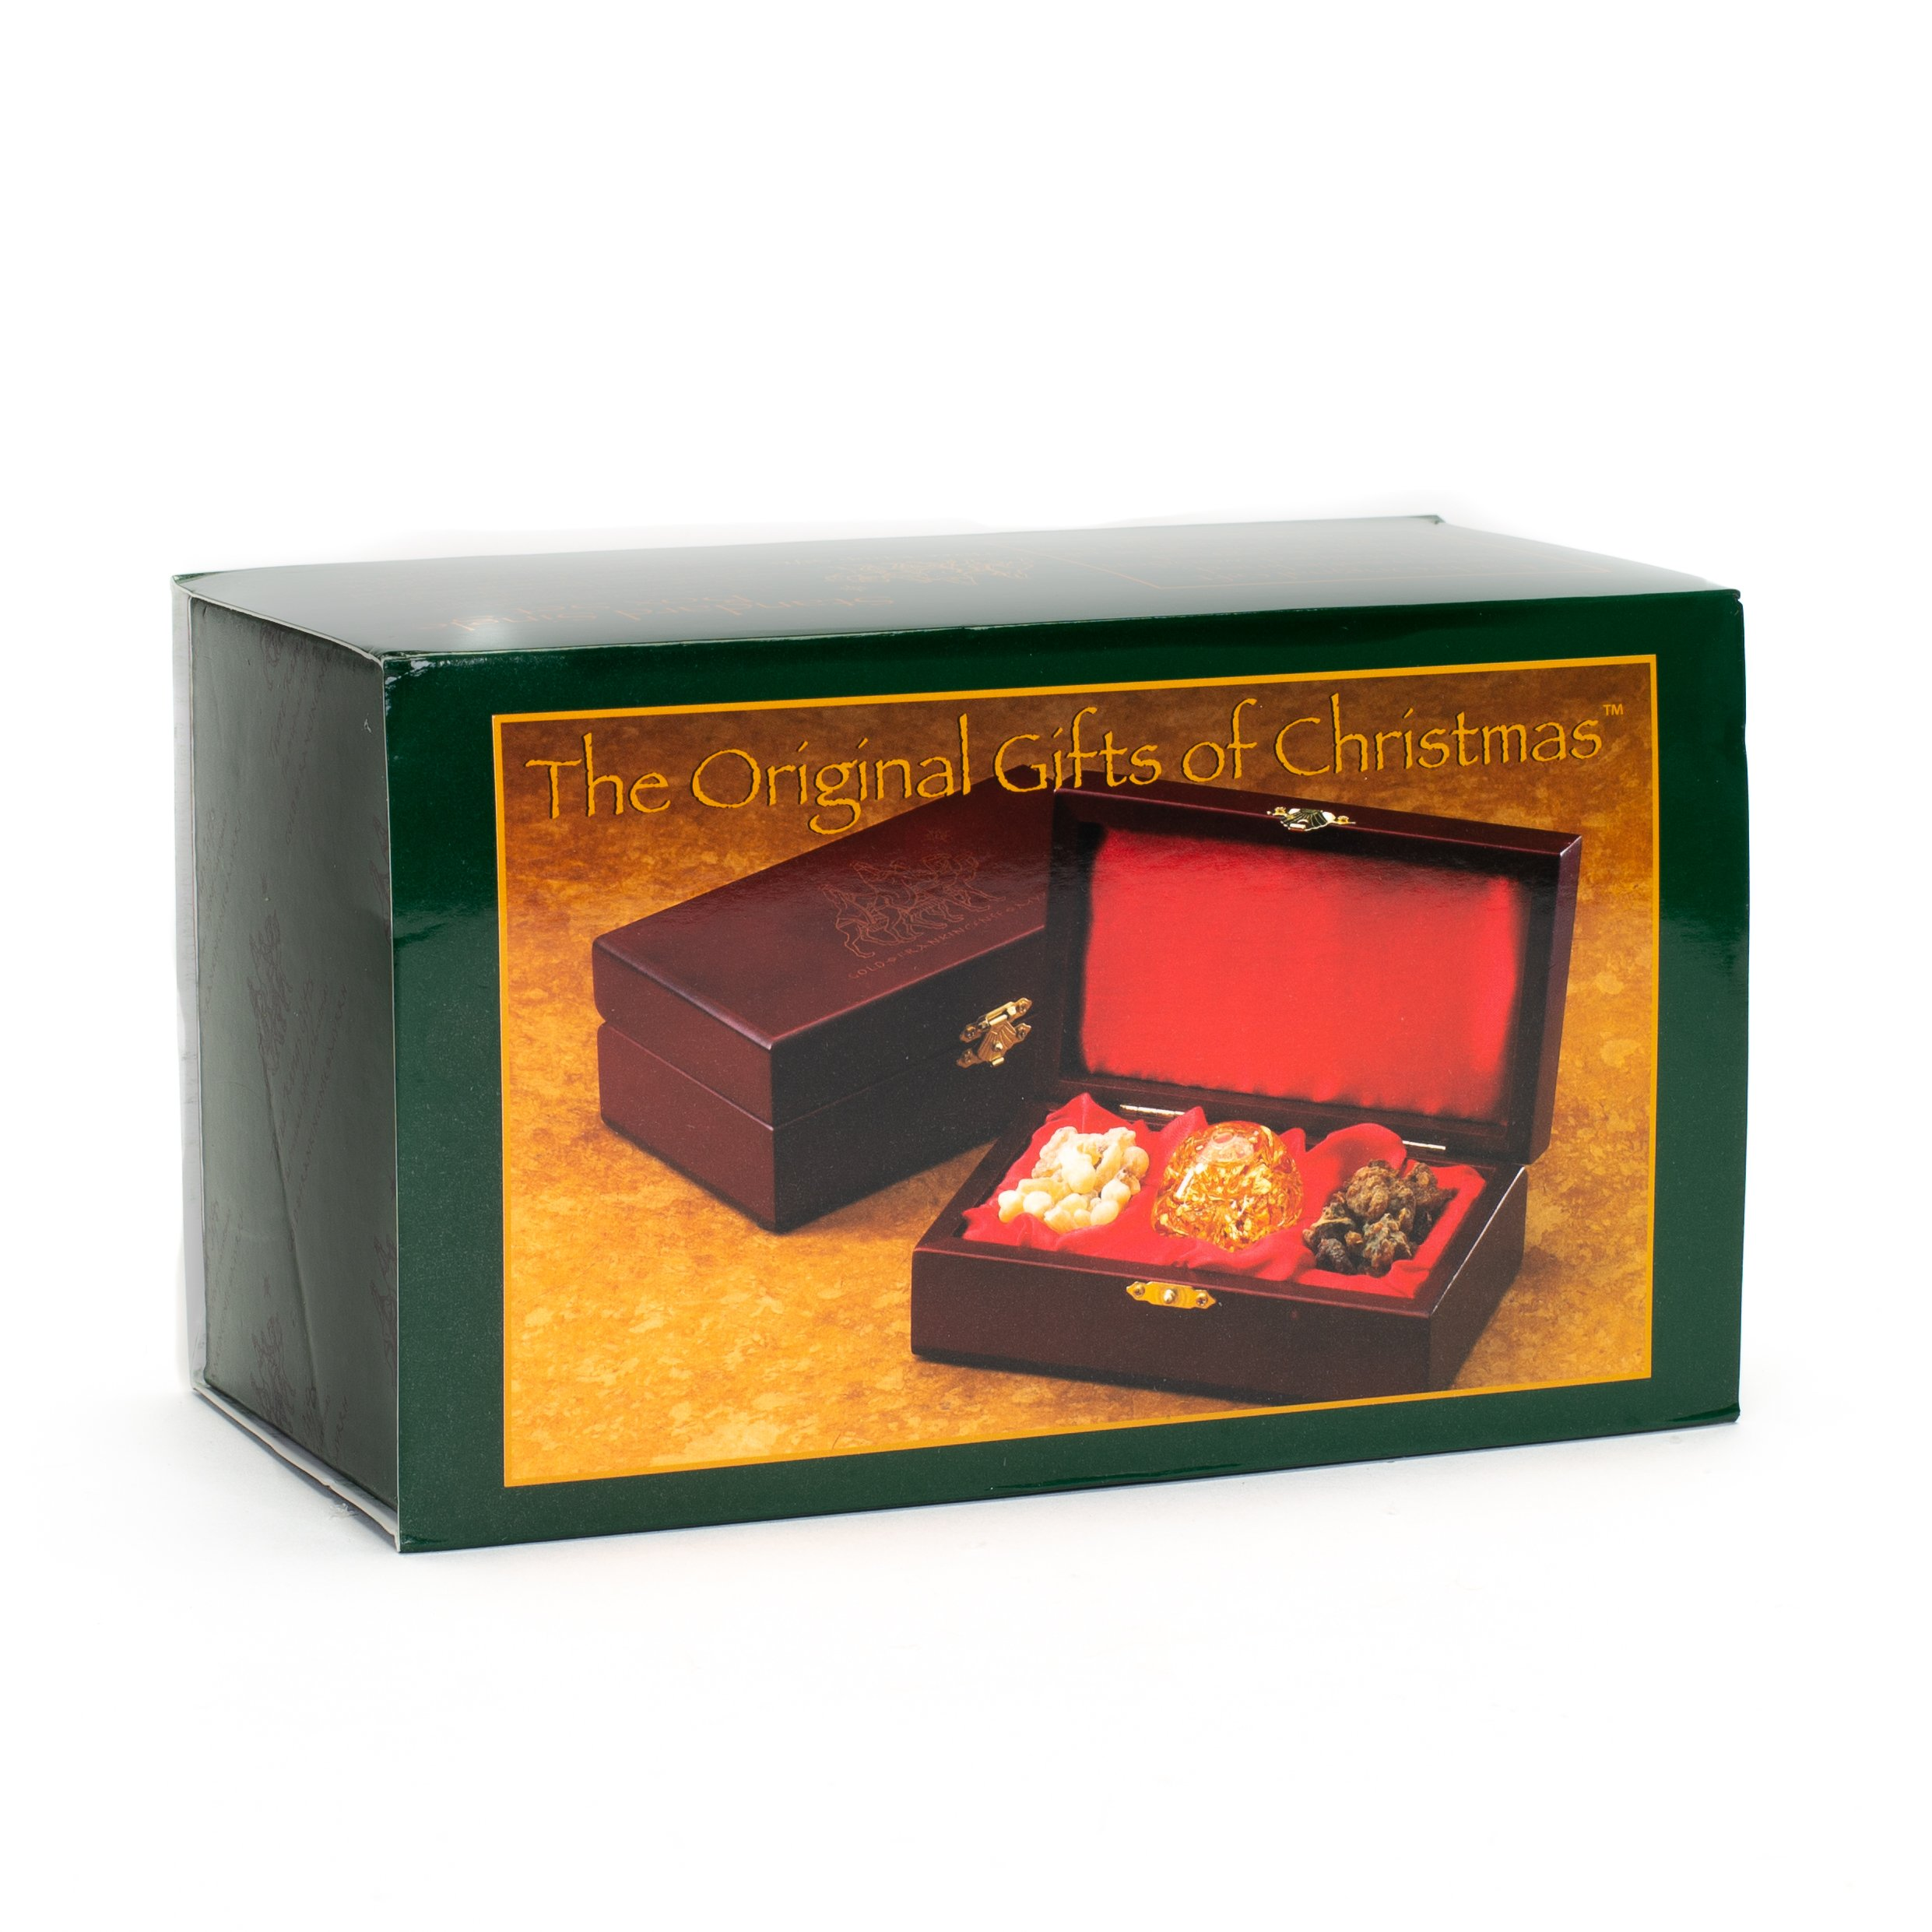 Three Kings Gifts Gold Frankincense and Myrrh Standard Single Box Set, 6 3/4 by 3 3/4 by 2-Inch by THREE KINGS GIFTS THE ORIGINAL GIFTS OFCHRISTMAS (Image #5)